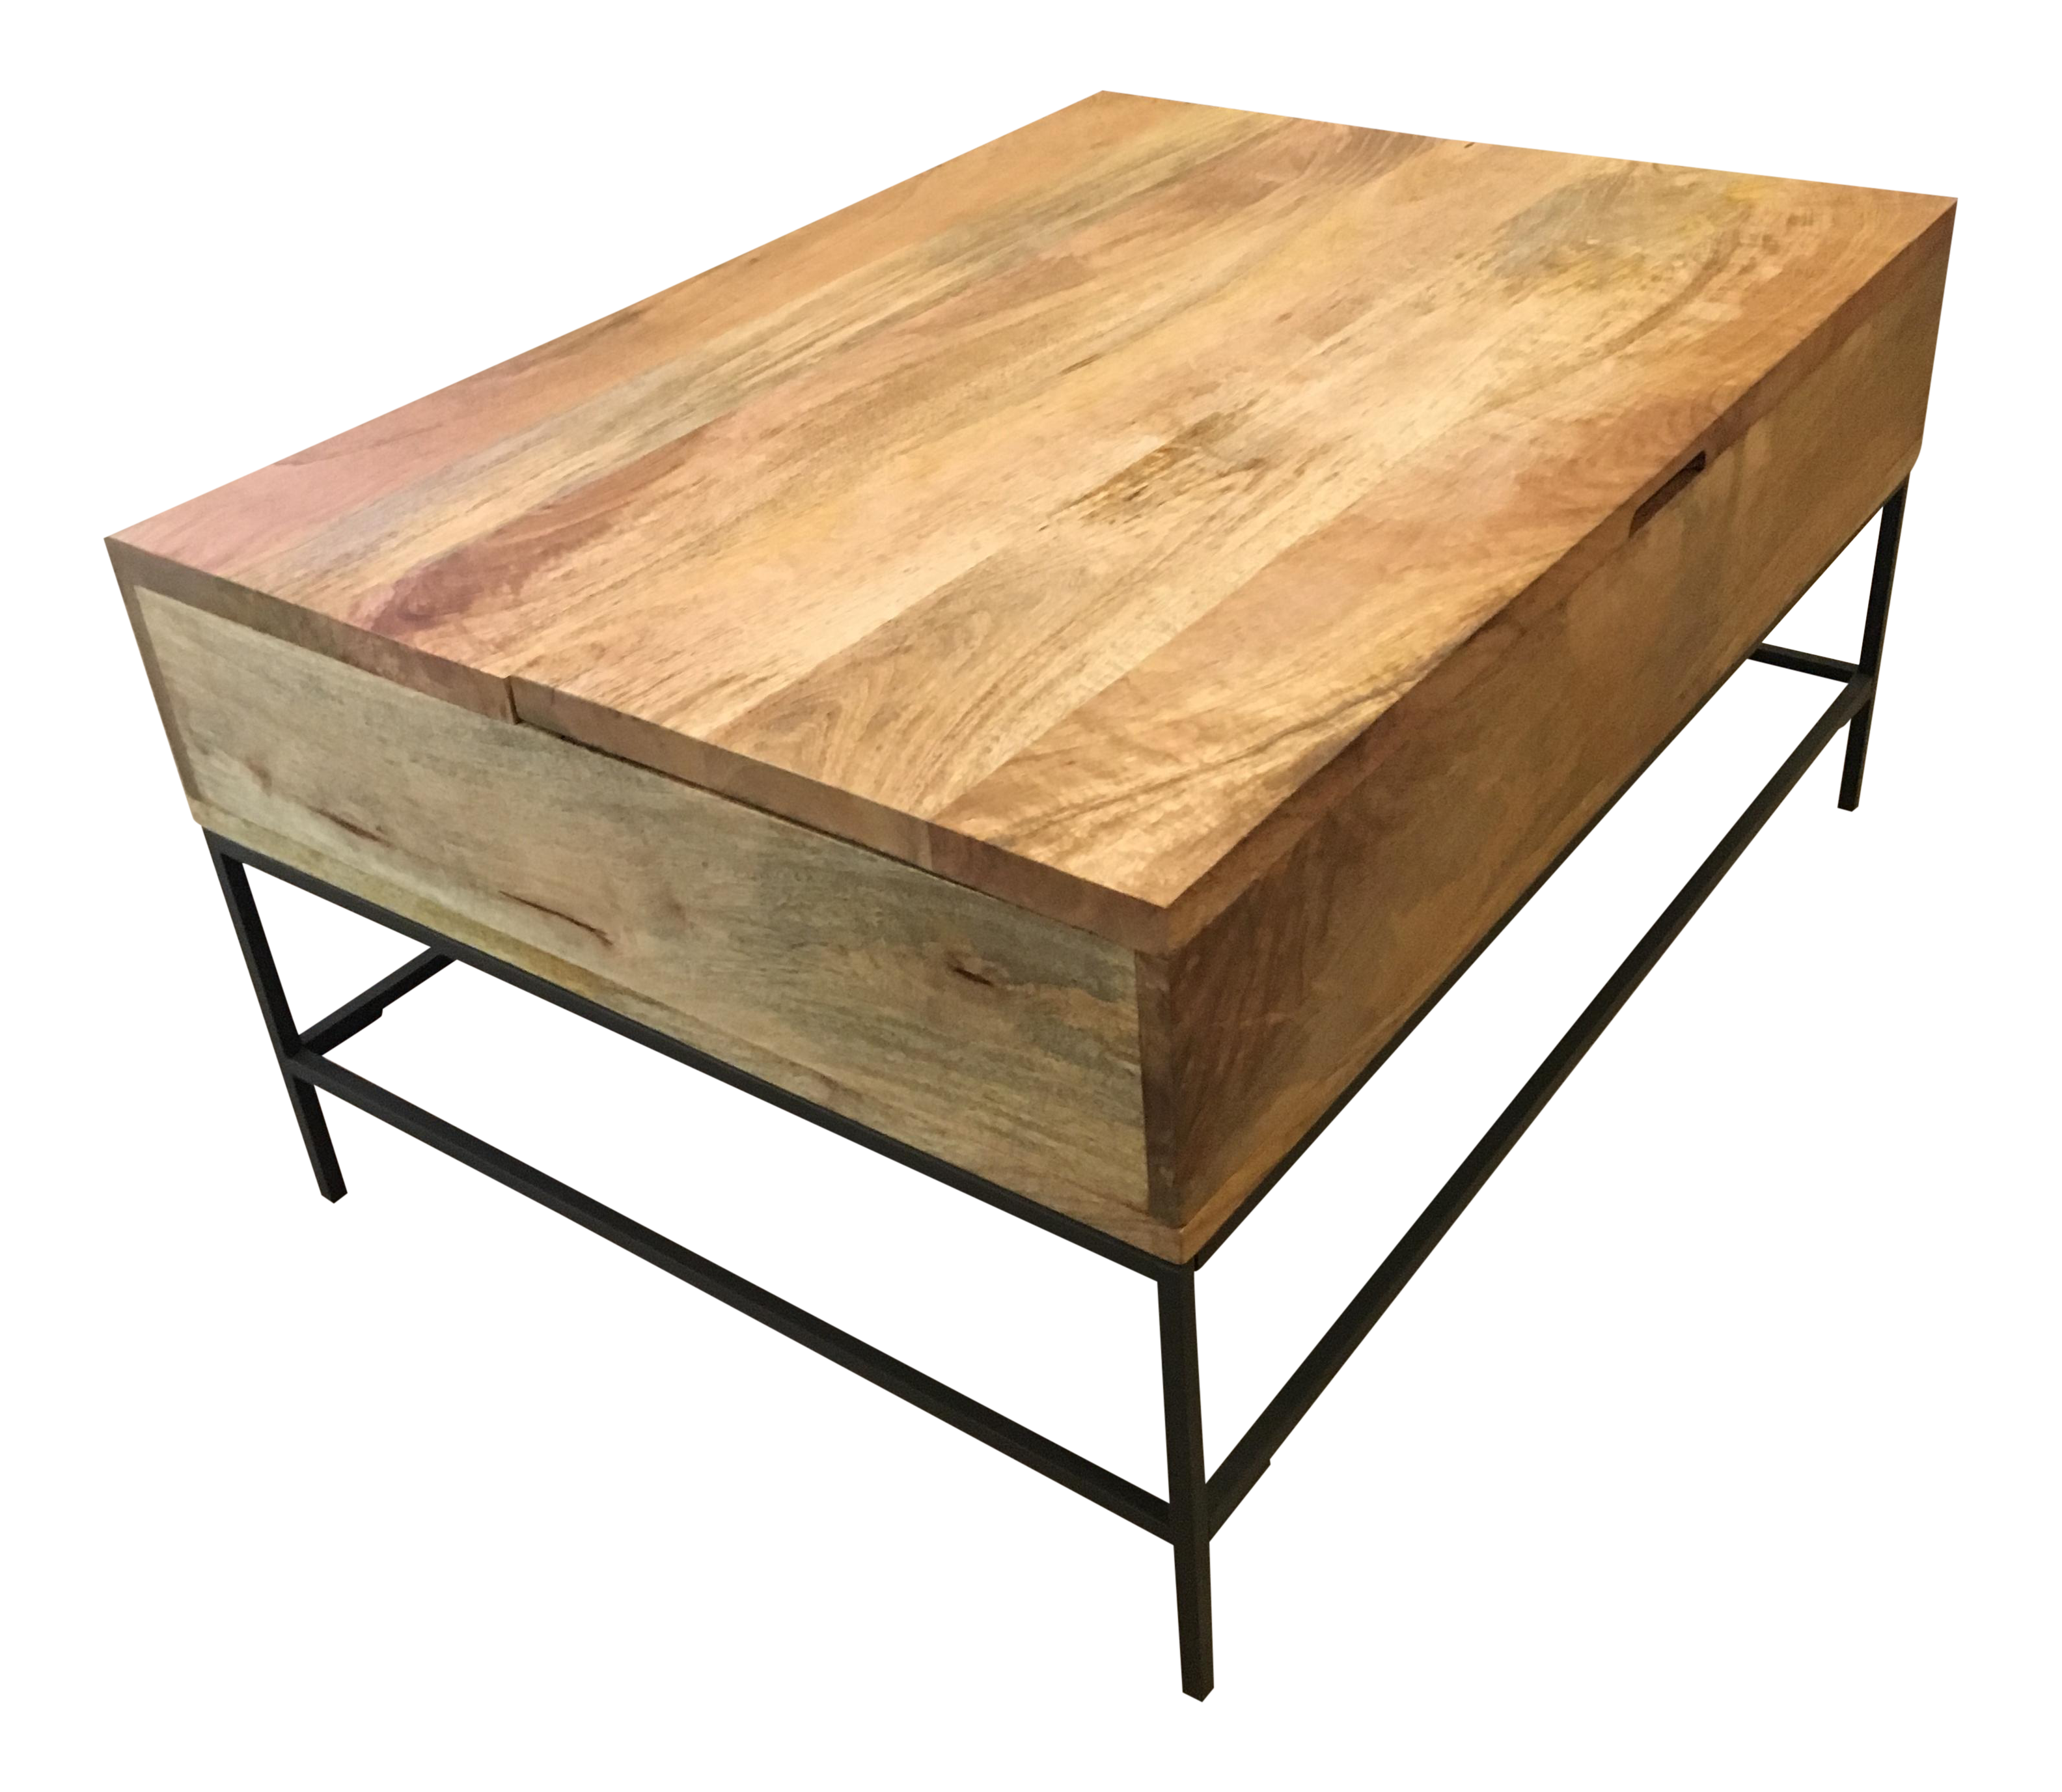 West Elm Industrial Coffee Table Home Decorating Ideas  : 620fc4ea 9d57 4234 812b 162cf154ae54aspectfitampwidth640ampheight640 from flockee.com size 640 x 640 jpeg 39kB